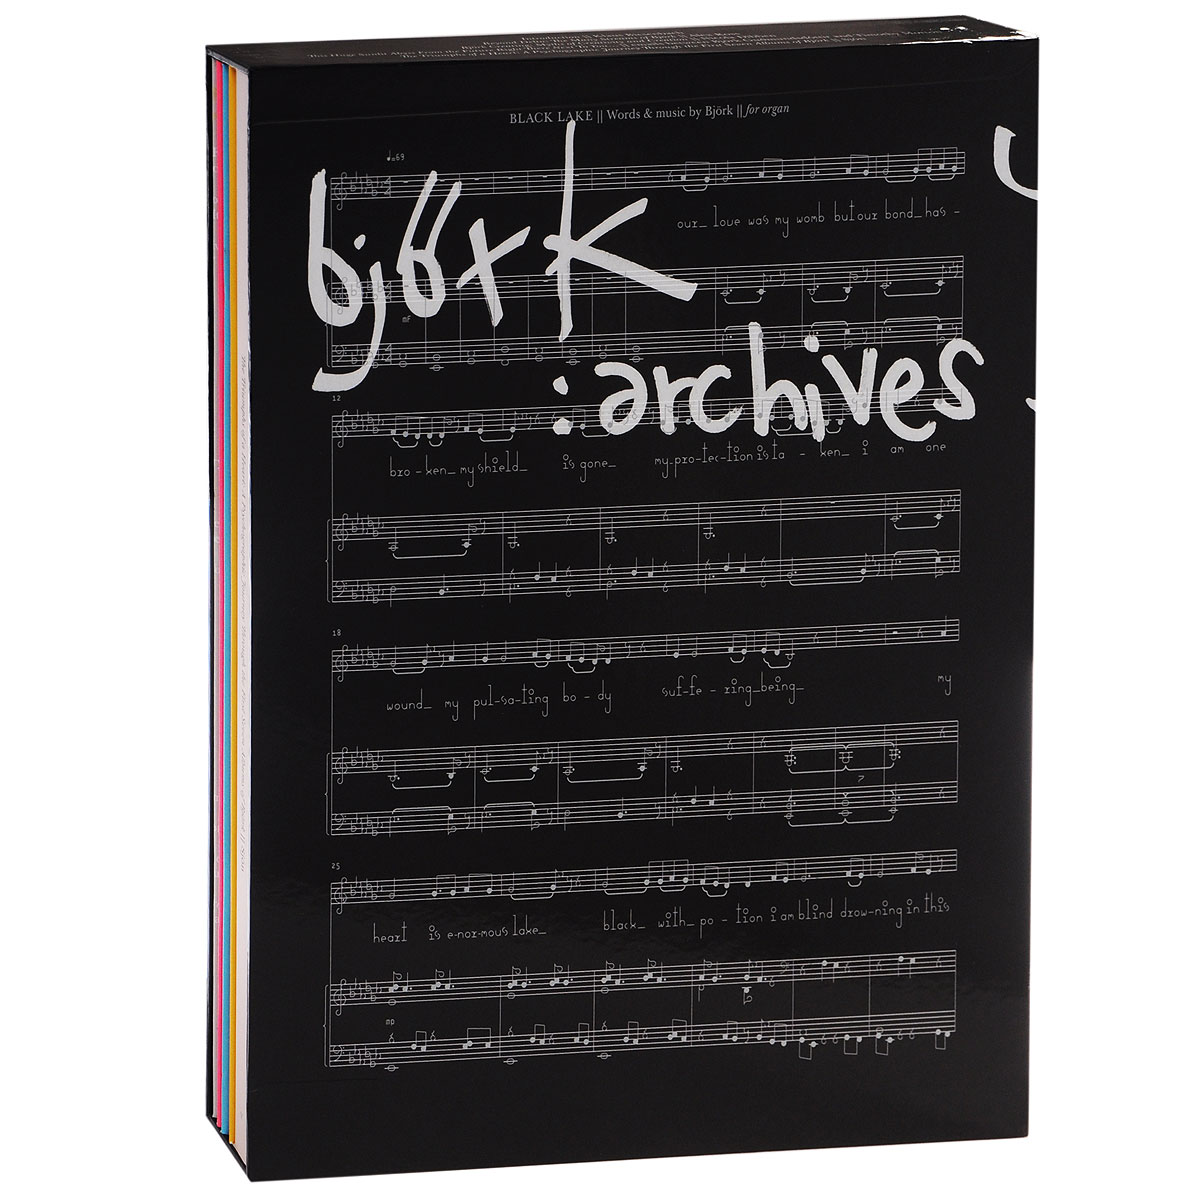 Bjork: Archives the collaborator